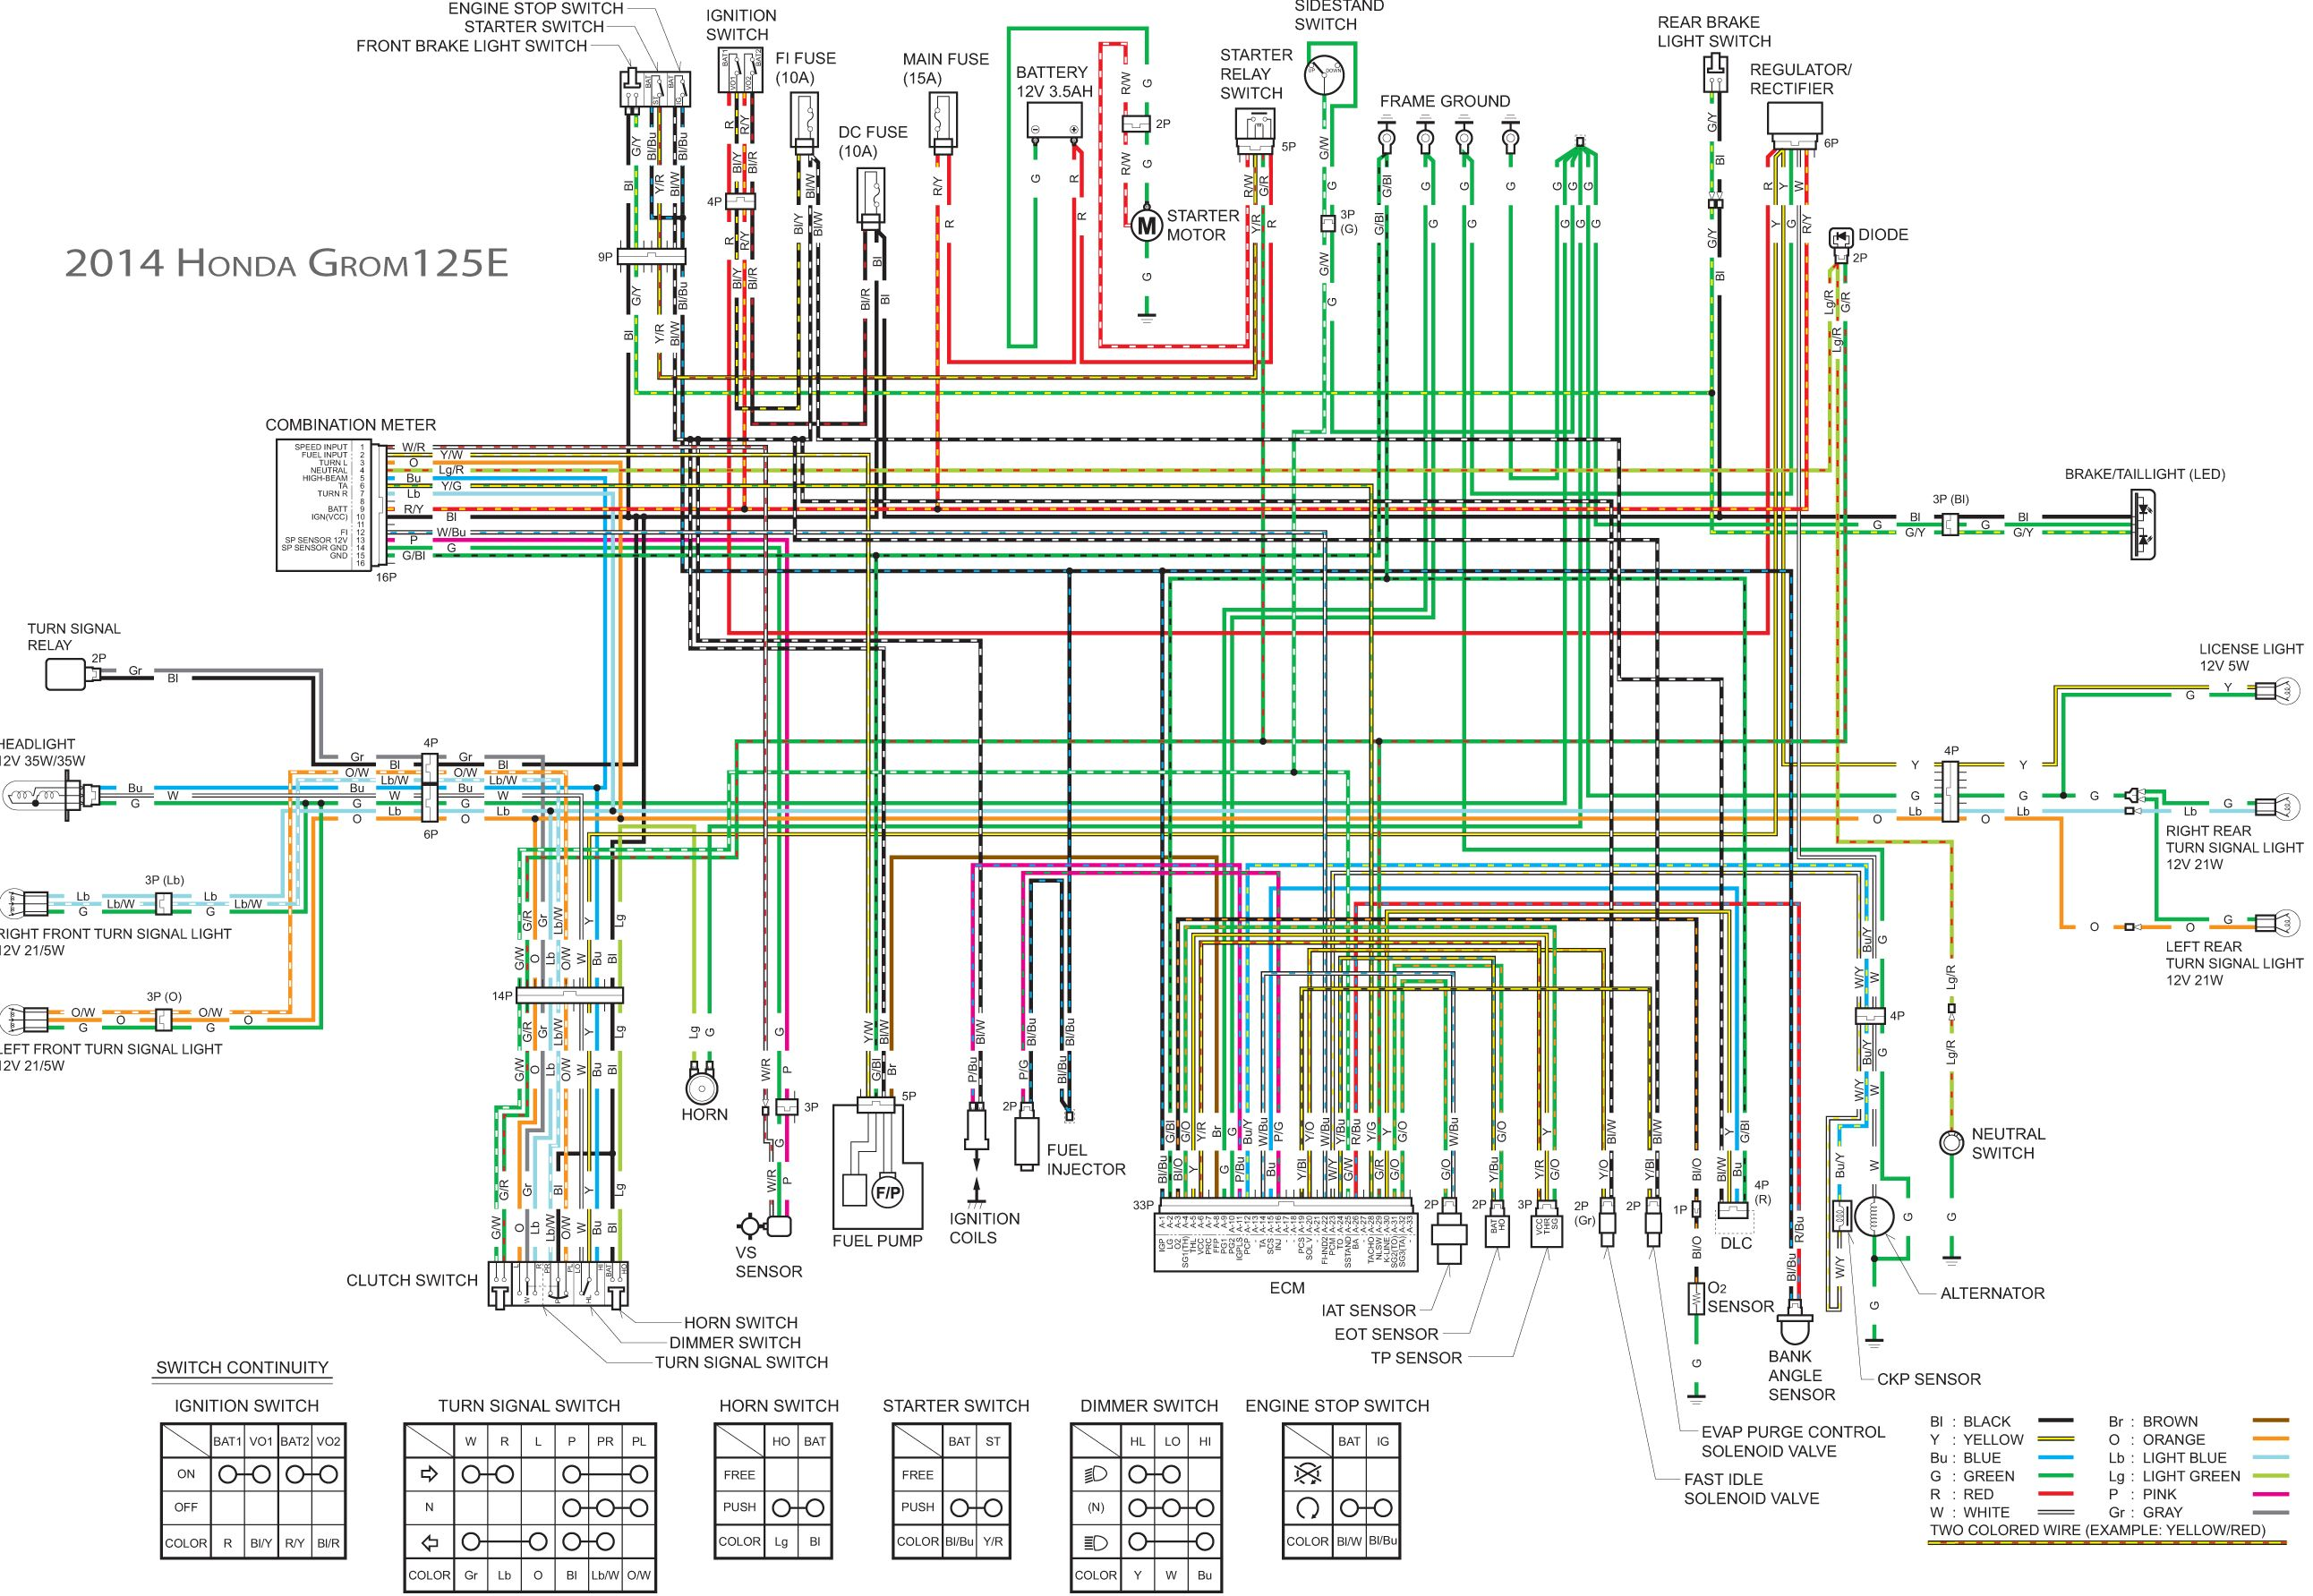 Wiring Diagram Honda Cb1000 Great Electrical Guide 2012 Cbr250ra Basic U2022 Rh Needpixies Com 2016 1994